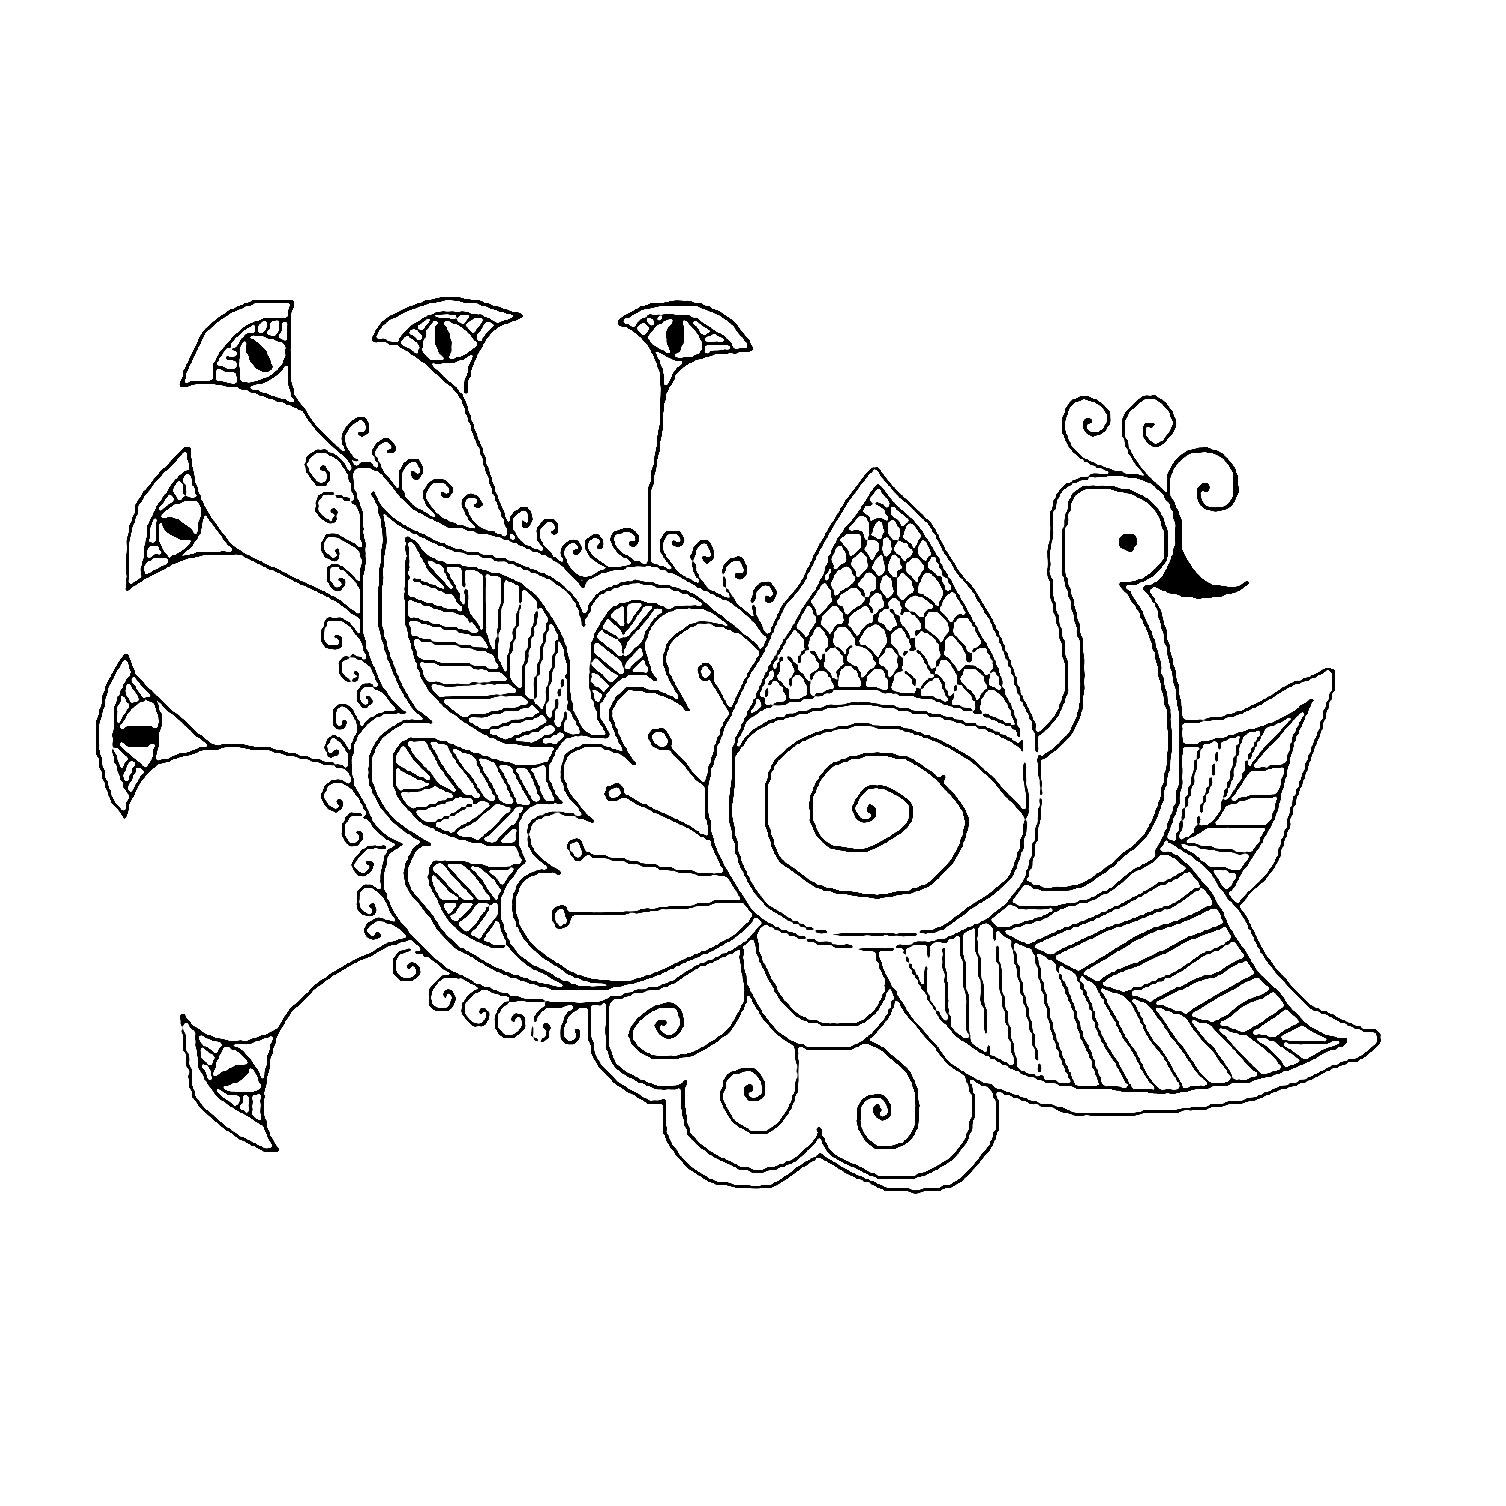 easy printable peacock coloring pages free printable peacock coloring pages for kids peacock printable easy coloring pages